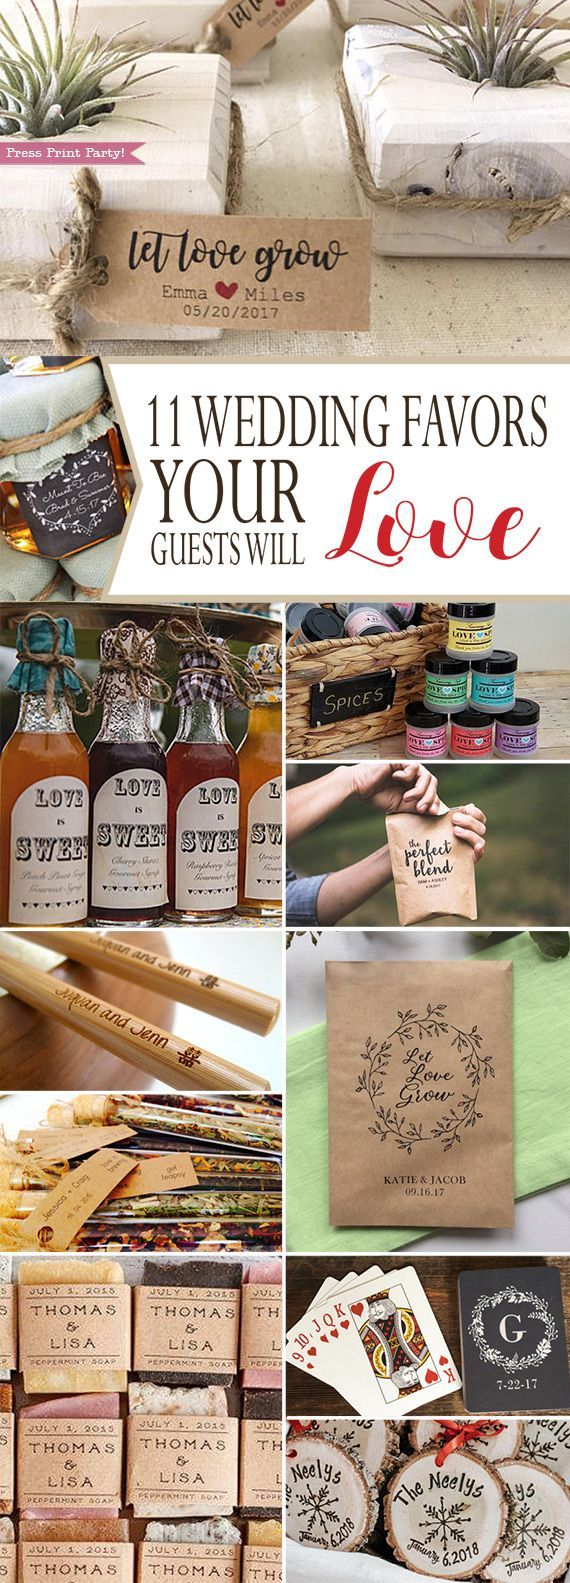 11 Wedding Favors Your Guests Will Love - By Press Print Party!  Wedding favors for guests, Unique ideas and rustic. For winter, spring, fall or summer weddings. Useful favors. Elegant, the best creative favors. - Honey, succulents, coffee, playing cards, tea, chopsticks, soaps, pancake syrup, ornament, seeds.